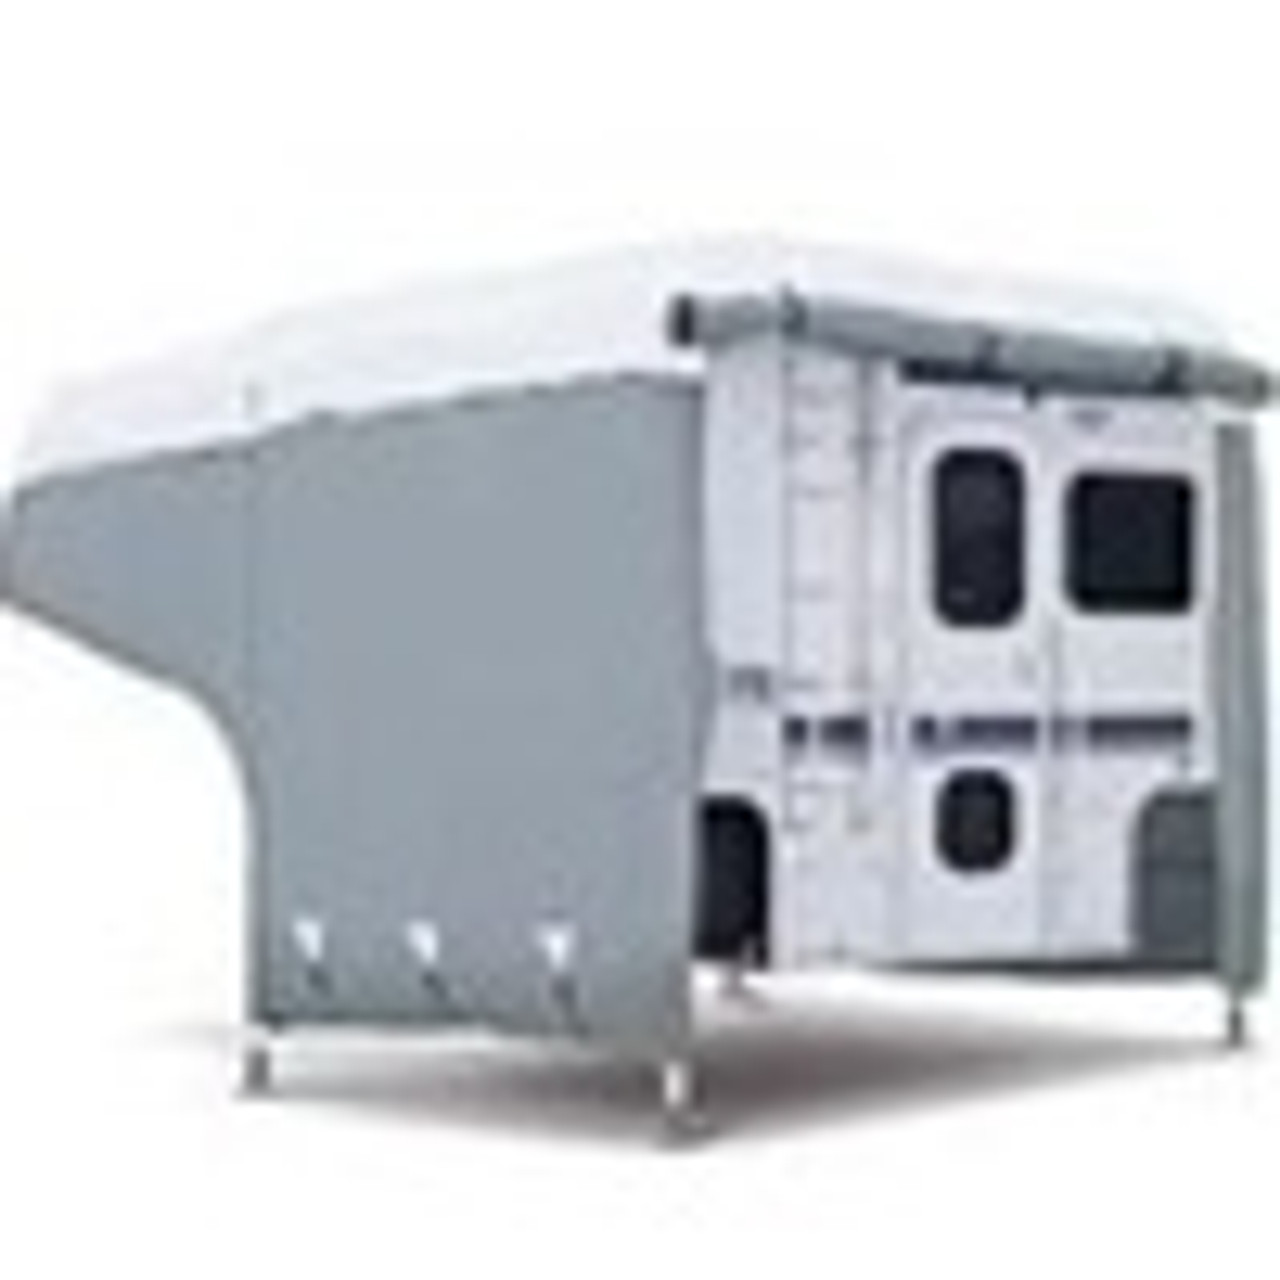 PolyPro III Deluxe Camper Cover